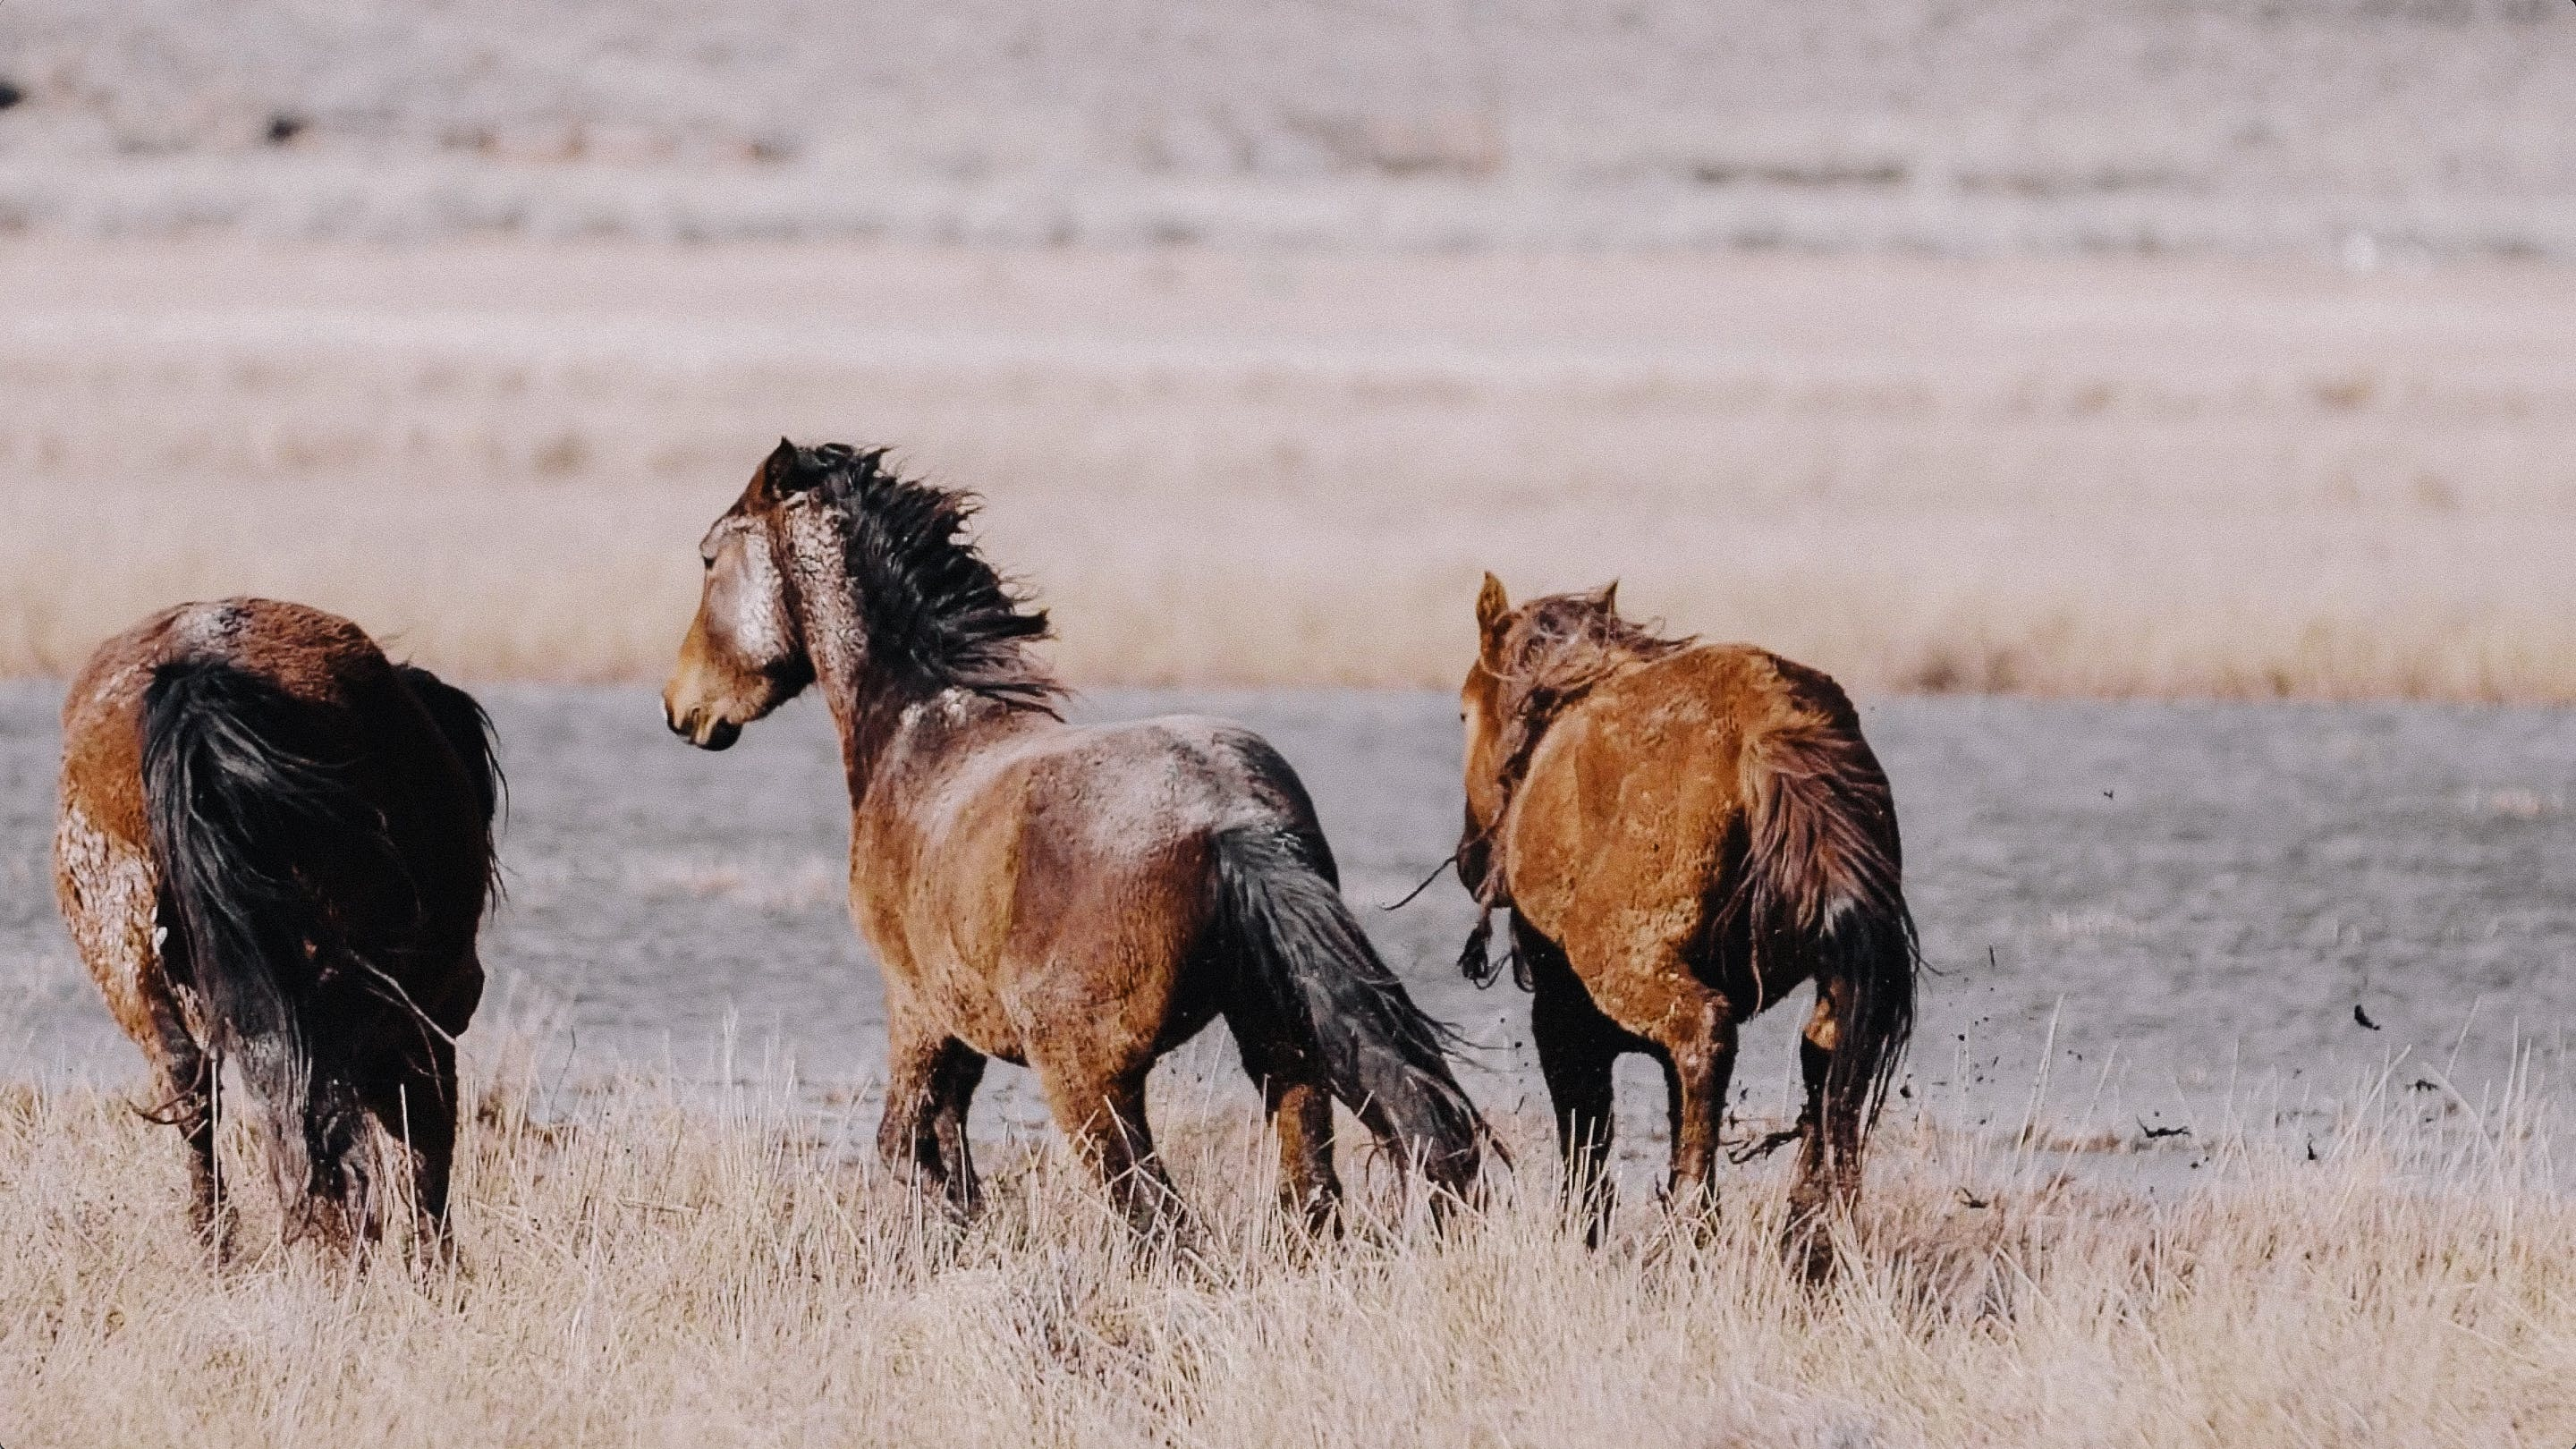 Wild horses in Northern Nevada, on location with photographer KT Merry